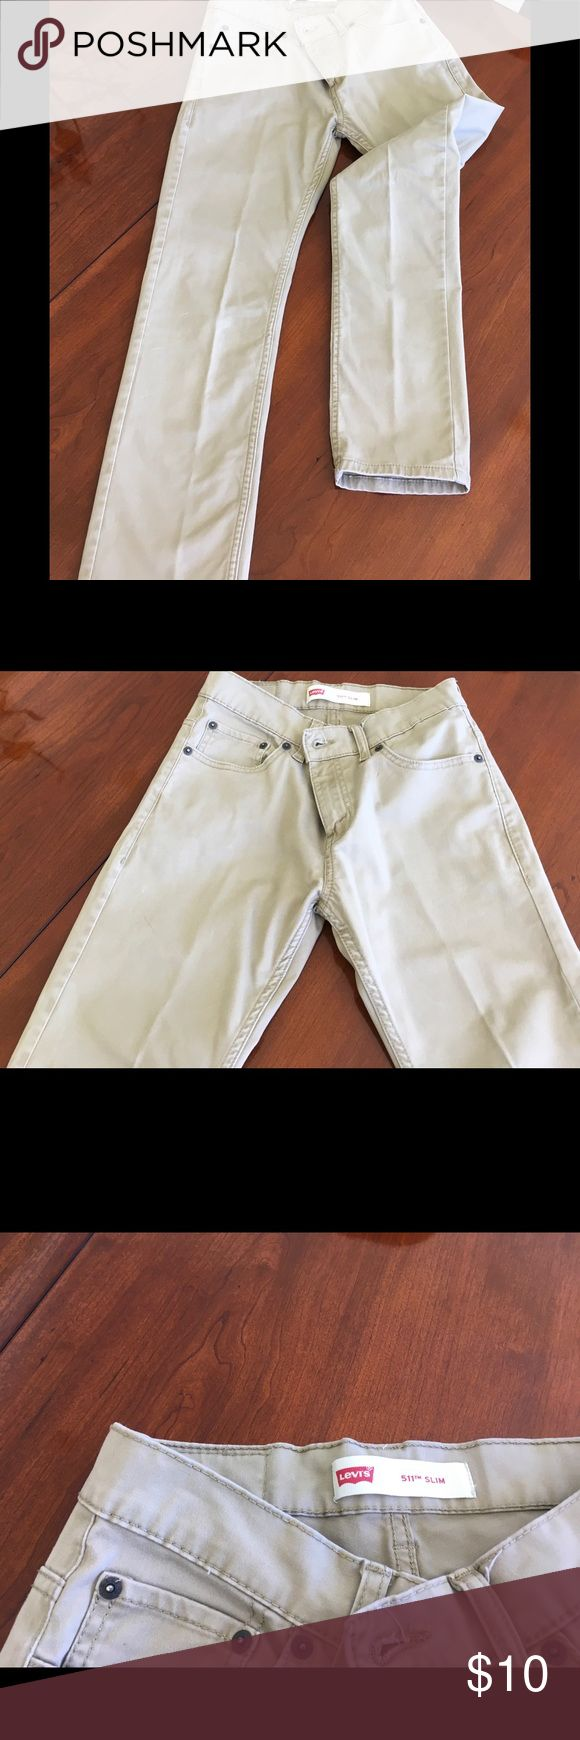 Boy's Levi's 511 Slim Khaki Jeans, 14 Reg, 27/27 In great condition, like new except for some minor flaws shown in the last 2 pictures, some pull threads and some lighter lines.  You do not see these flaws when on but I wanted to disclose them. Levi's Bottoms Jeans